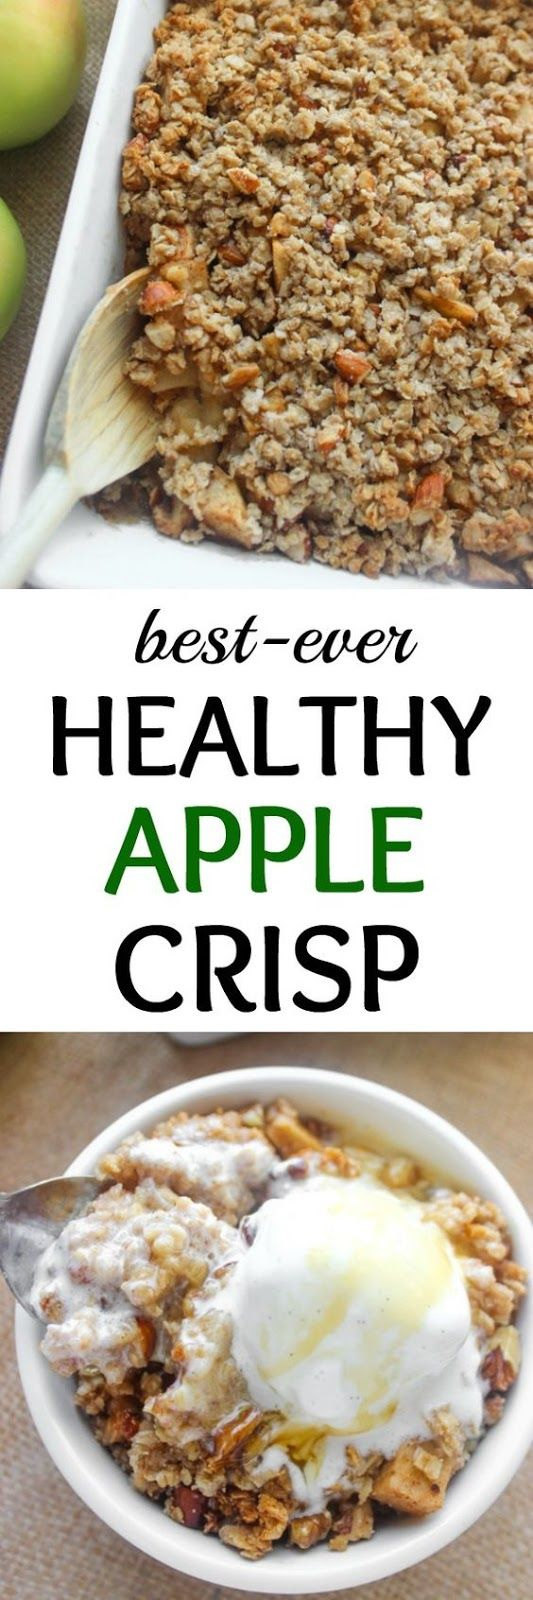 INGREDIENTS: For the apples: 5 granny smith apples 1 tablespoon pure maple syrup 3 tablespoons water 2 teaspoons cinnamon ...